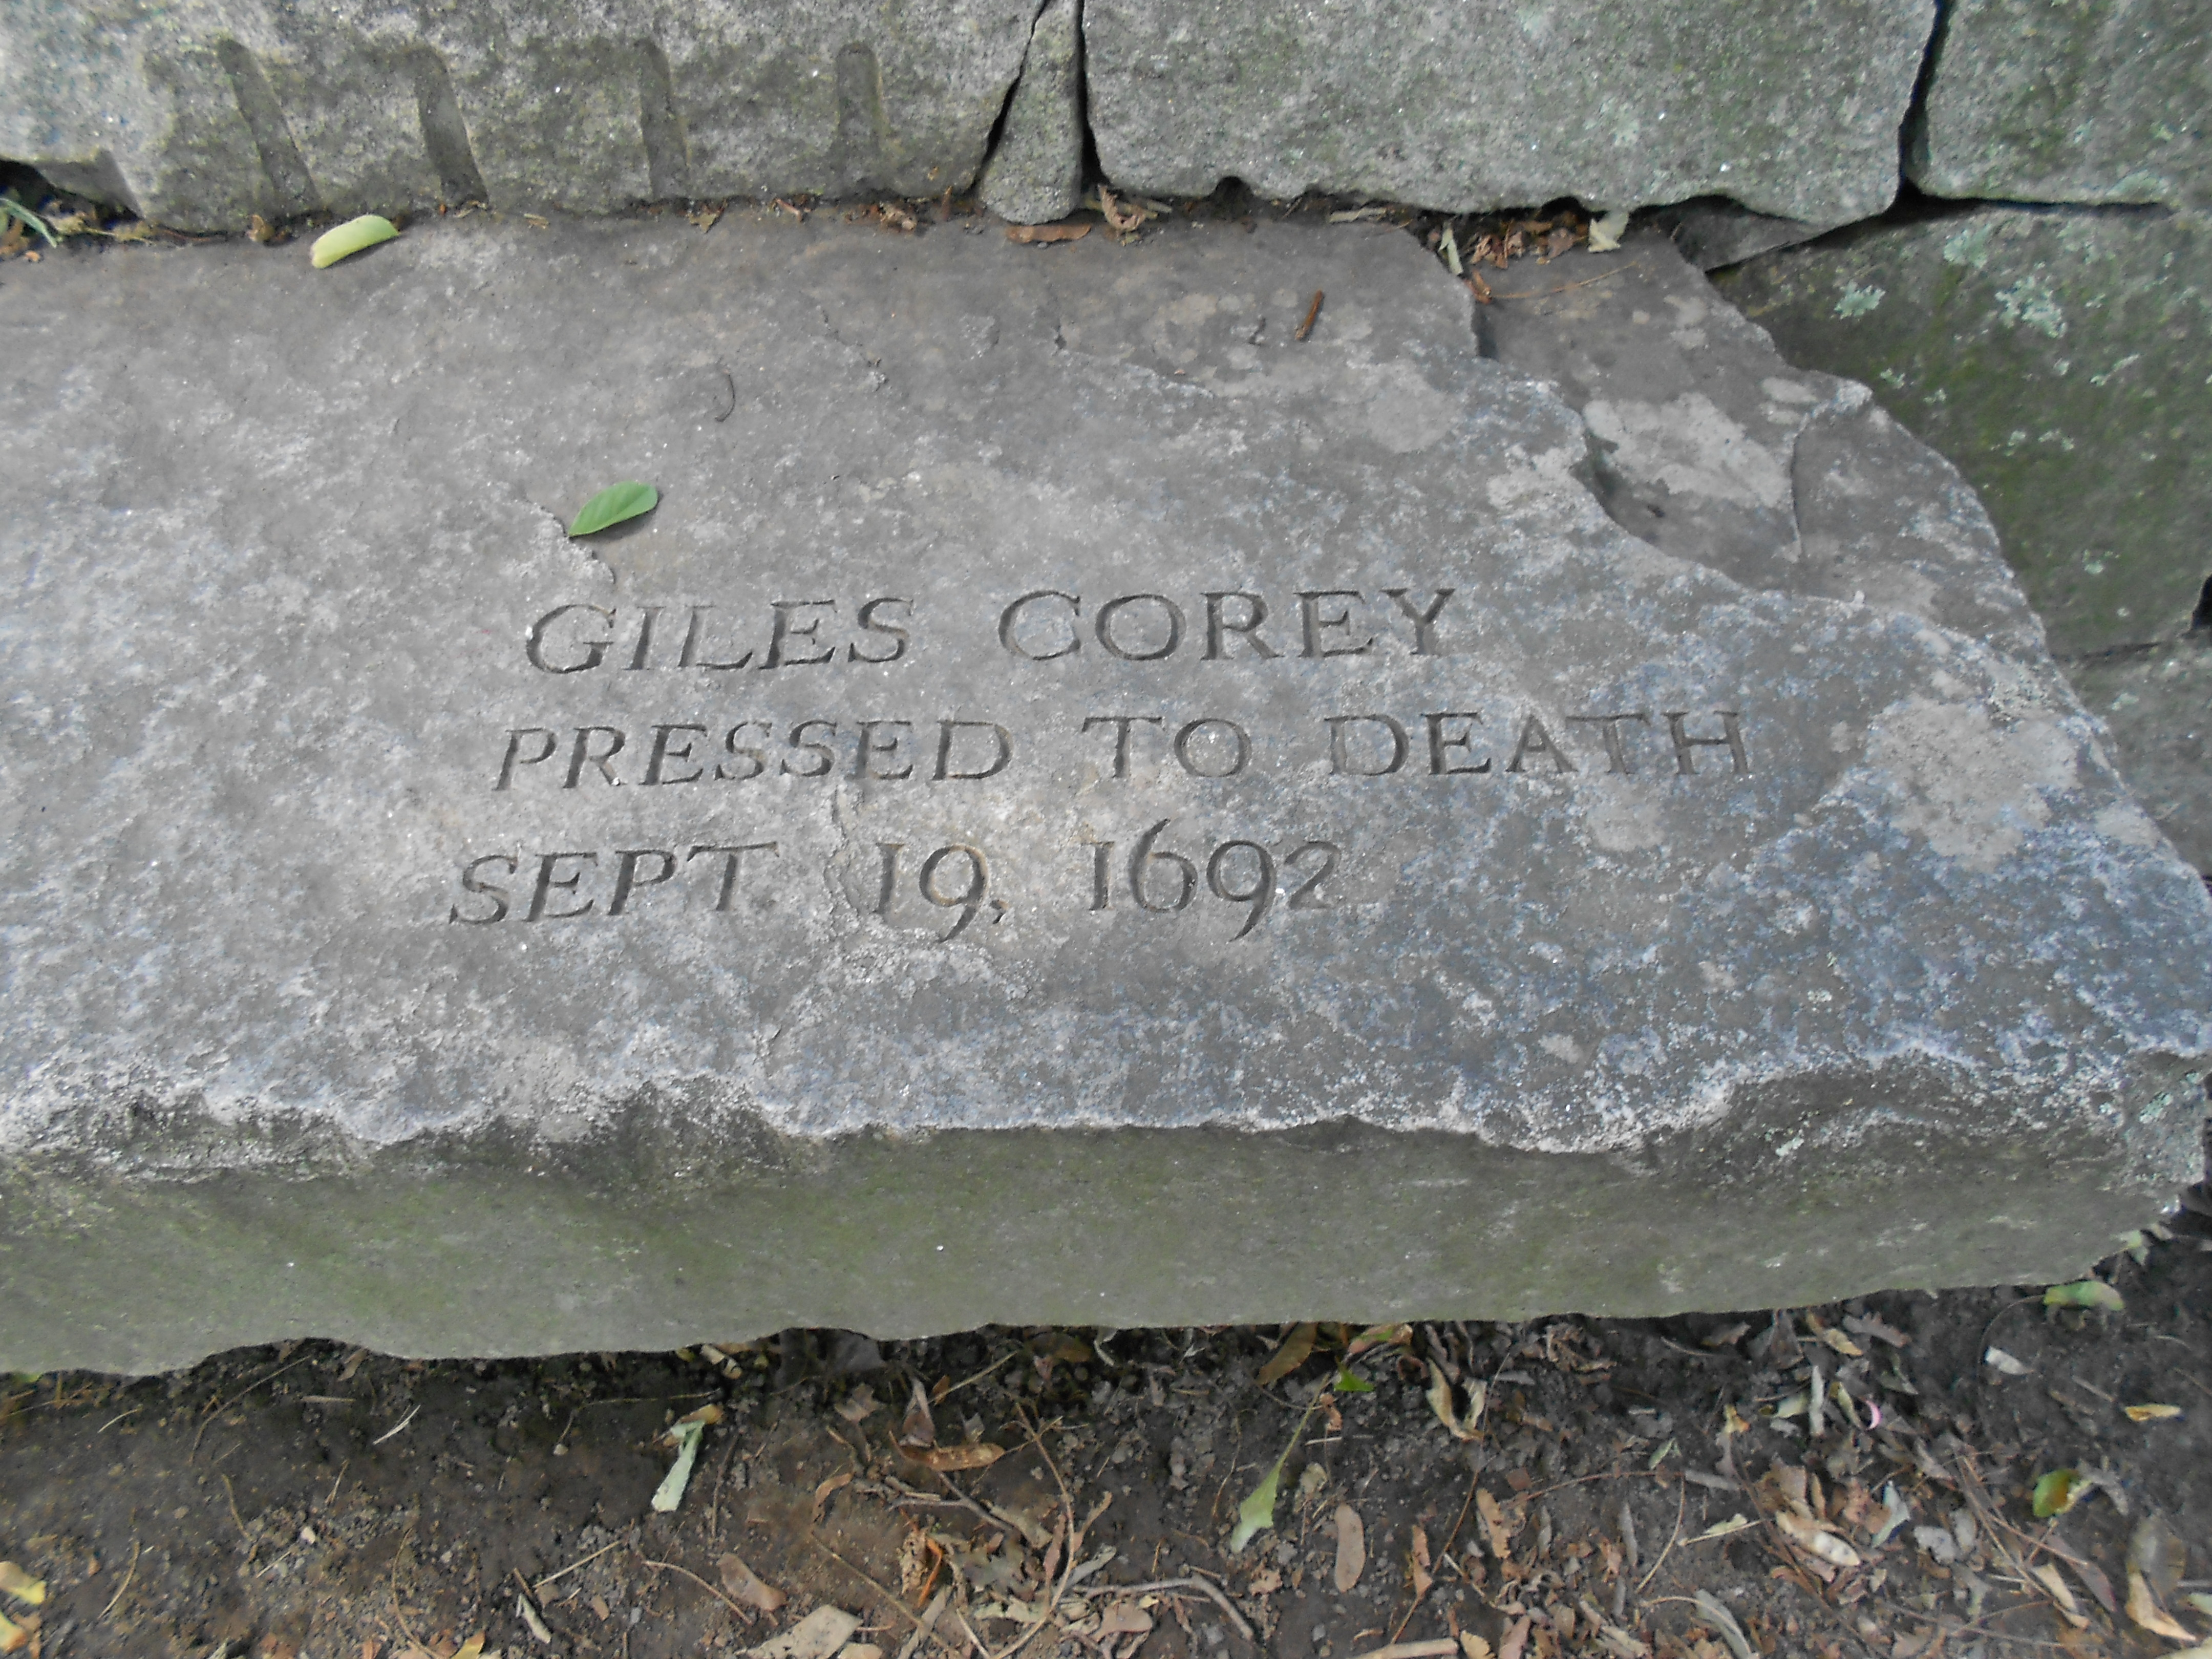 salem witchcraft trials giles corey These are the sources and citations used to research salem witch trials this bibliography was generated on cite this for me on friday, may 12 the salem witchcraft trials of 1692 giles corey, the only man pressed to death in america (salem witch trials.